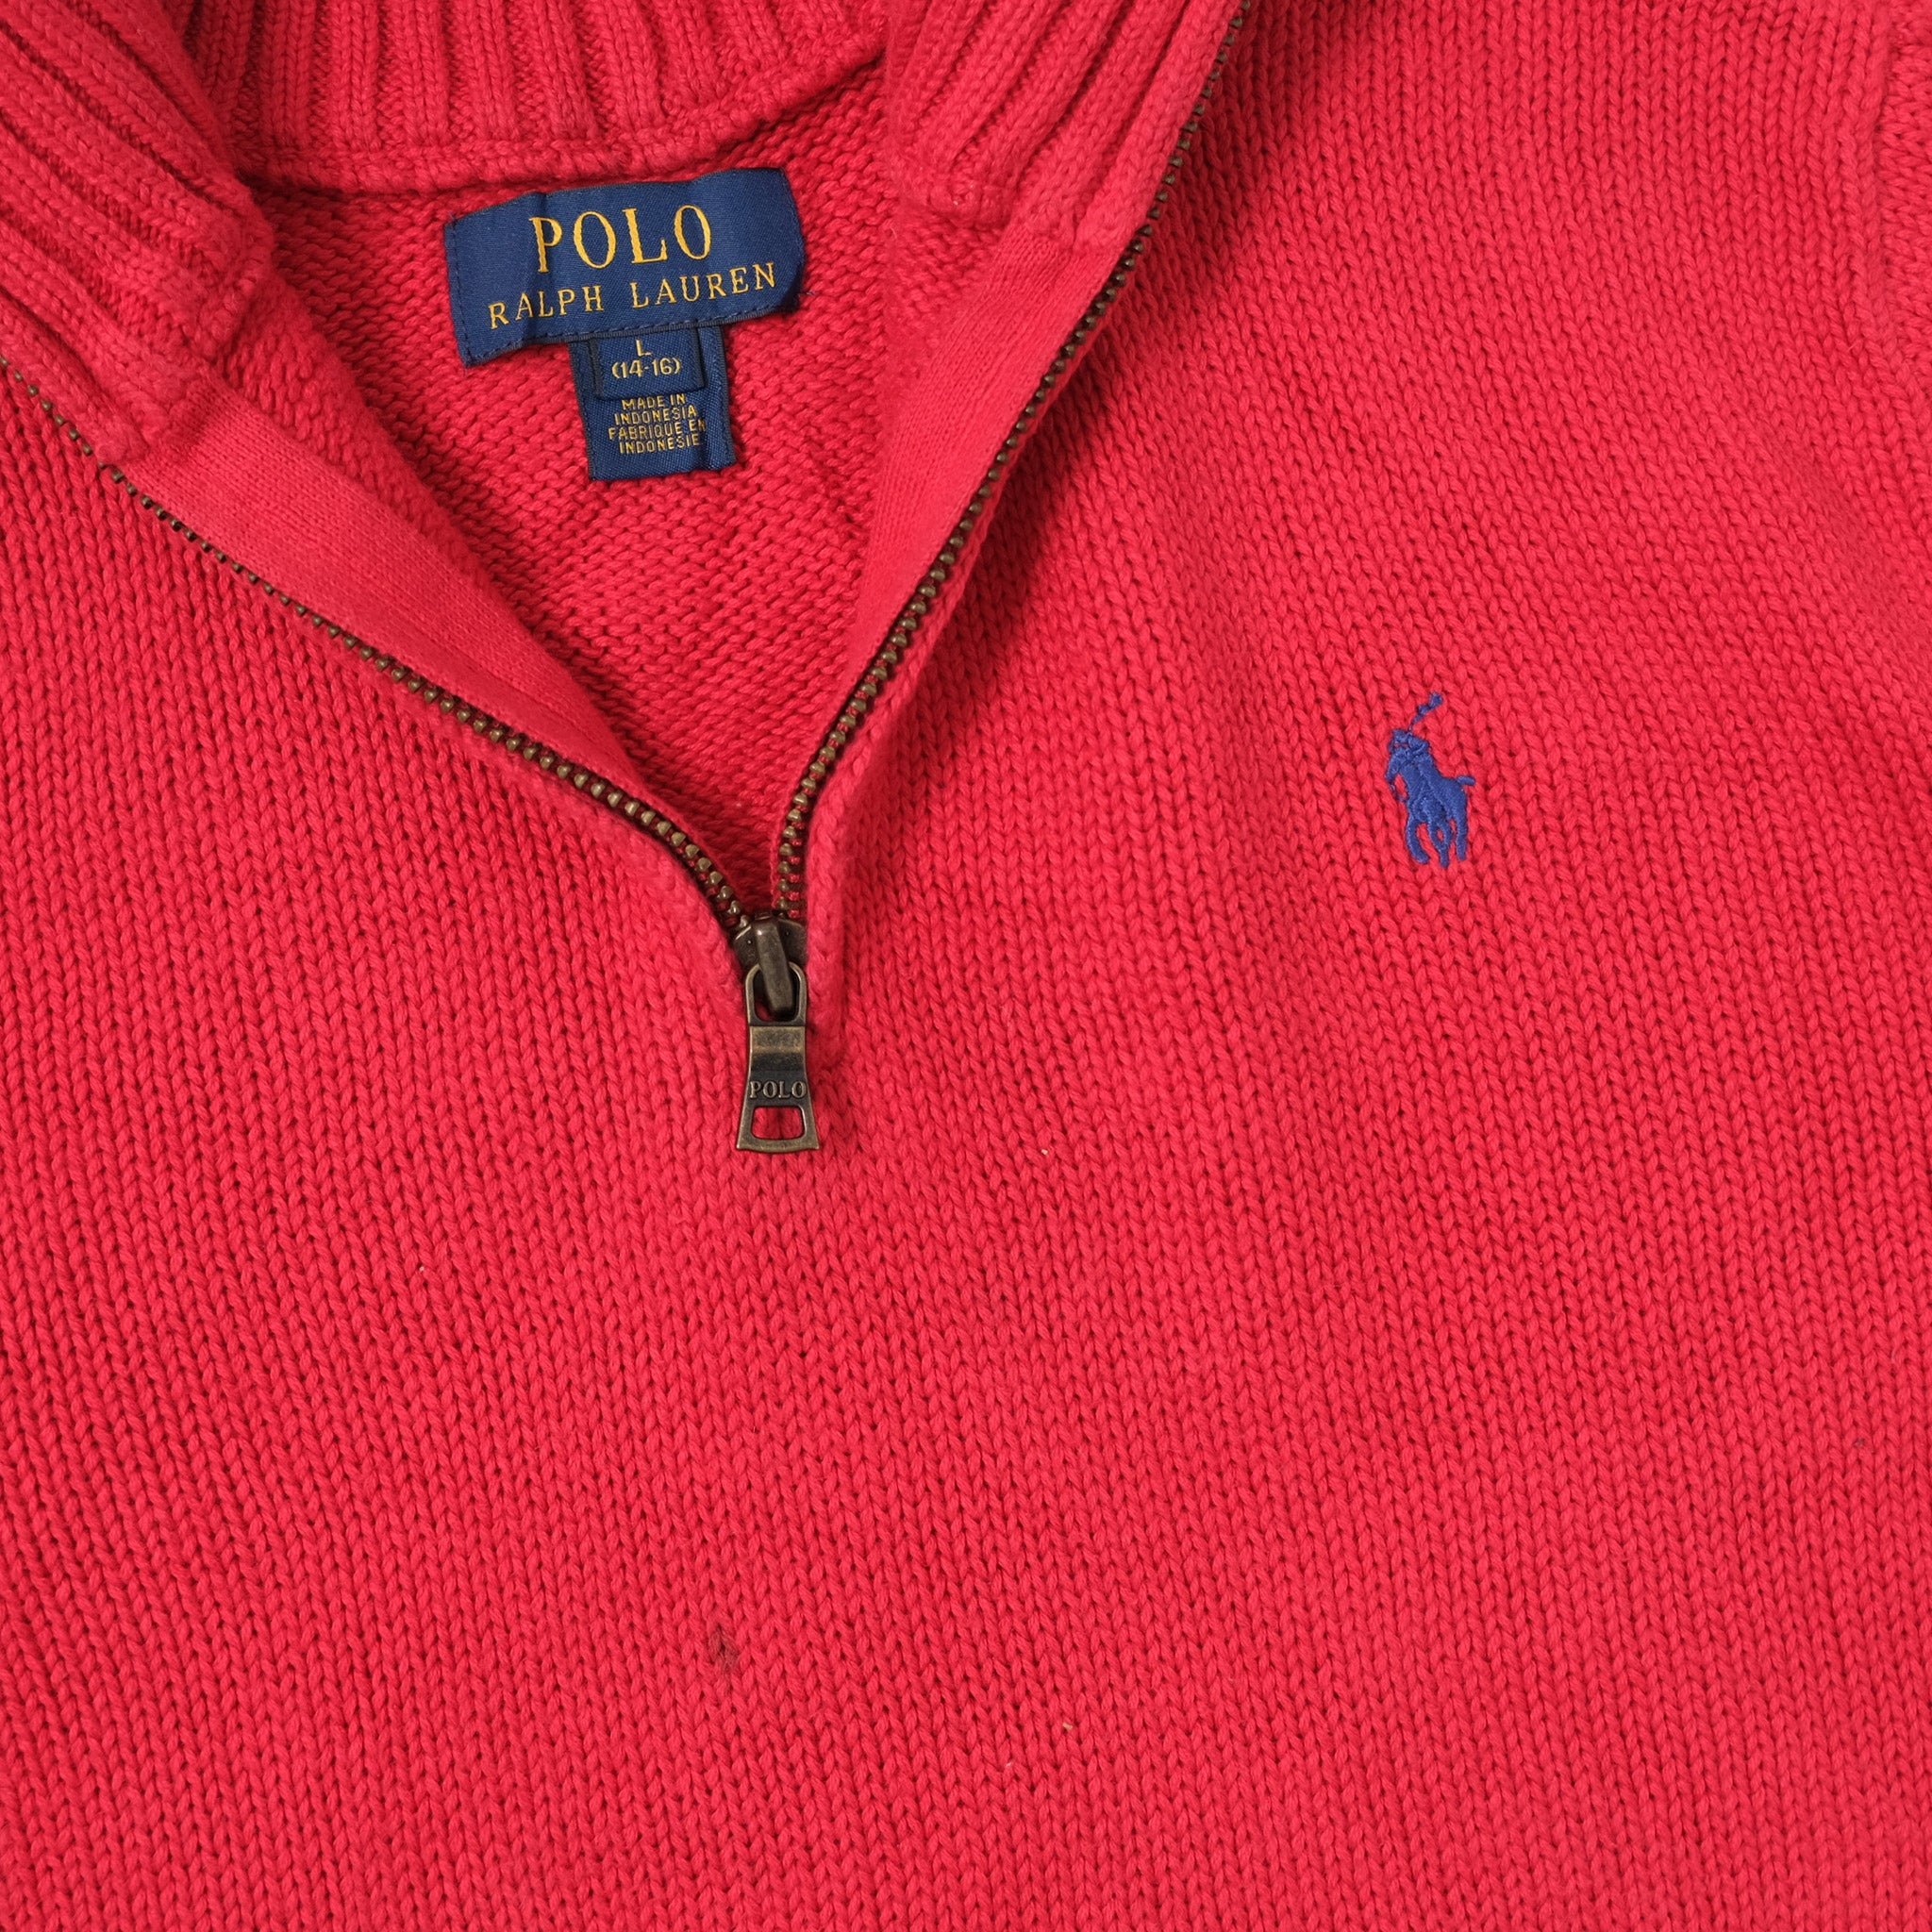 Vintage Polo Ralph Lauren Women's Q-Zip Sweater Small